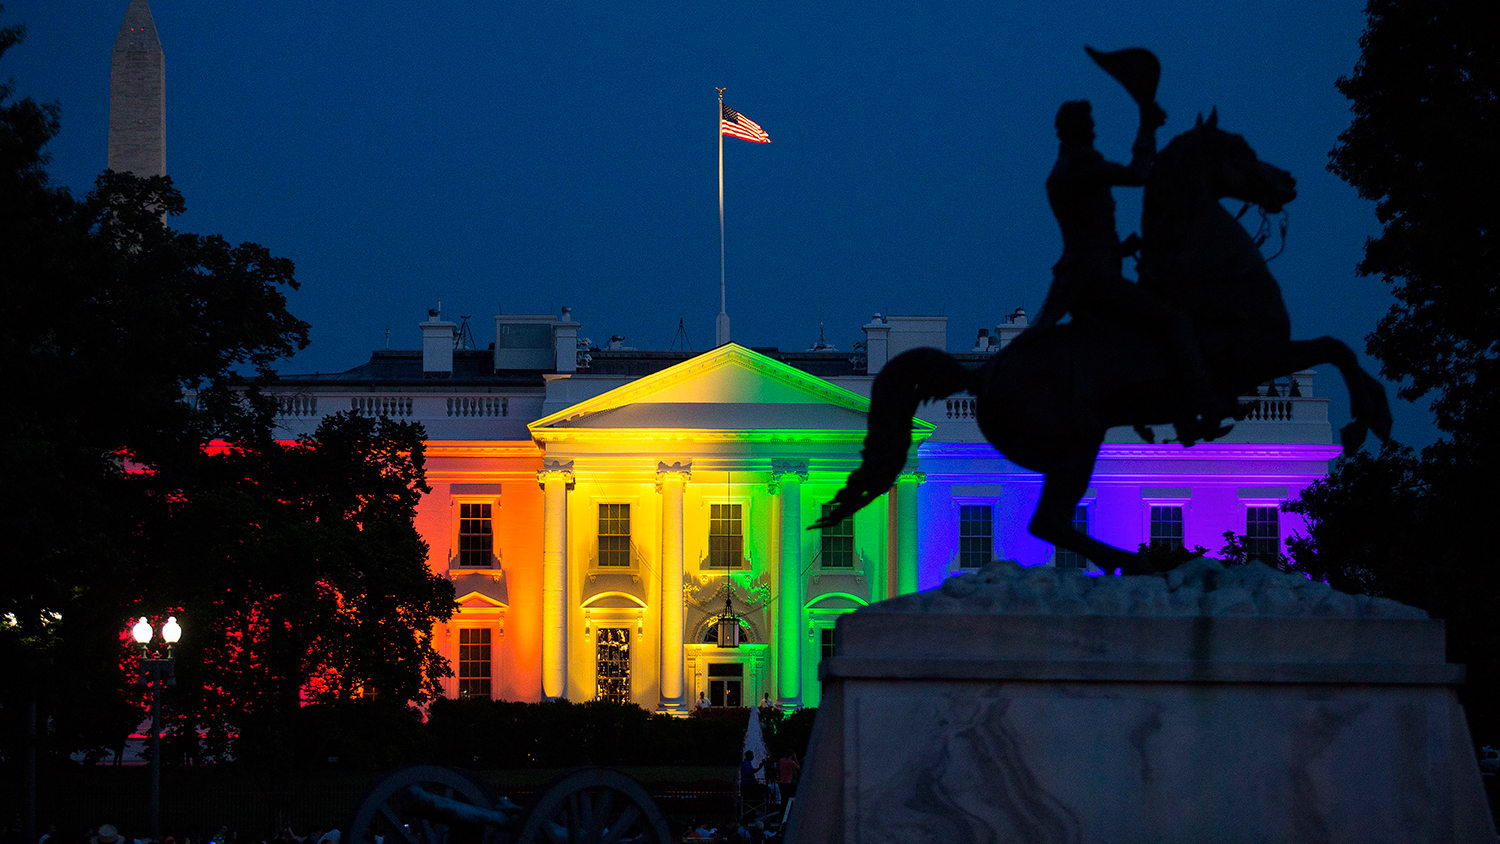 from Killian gays in white house